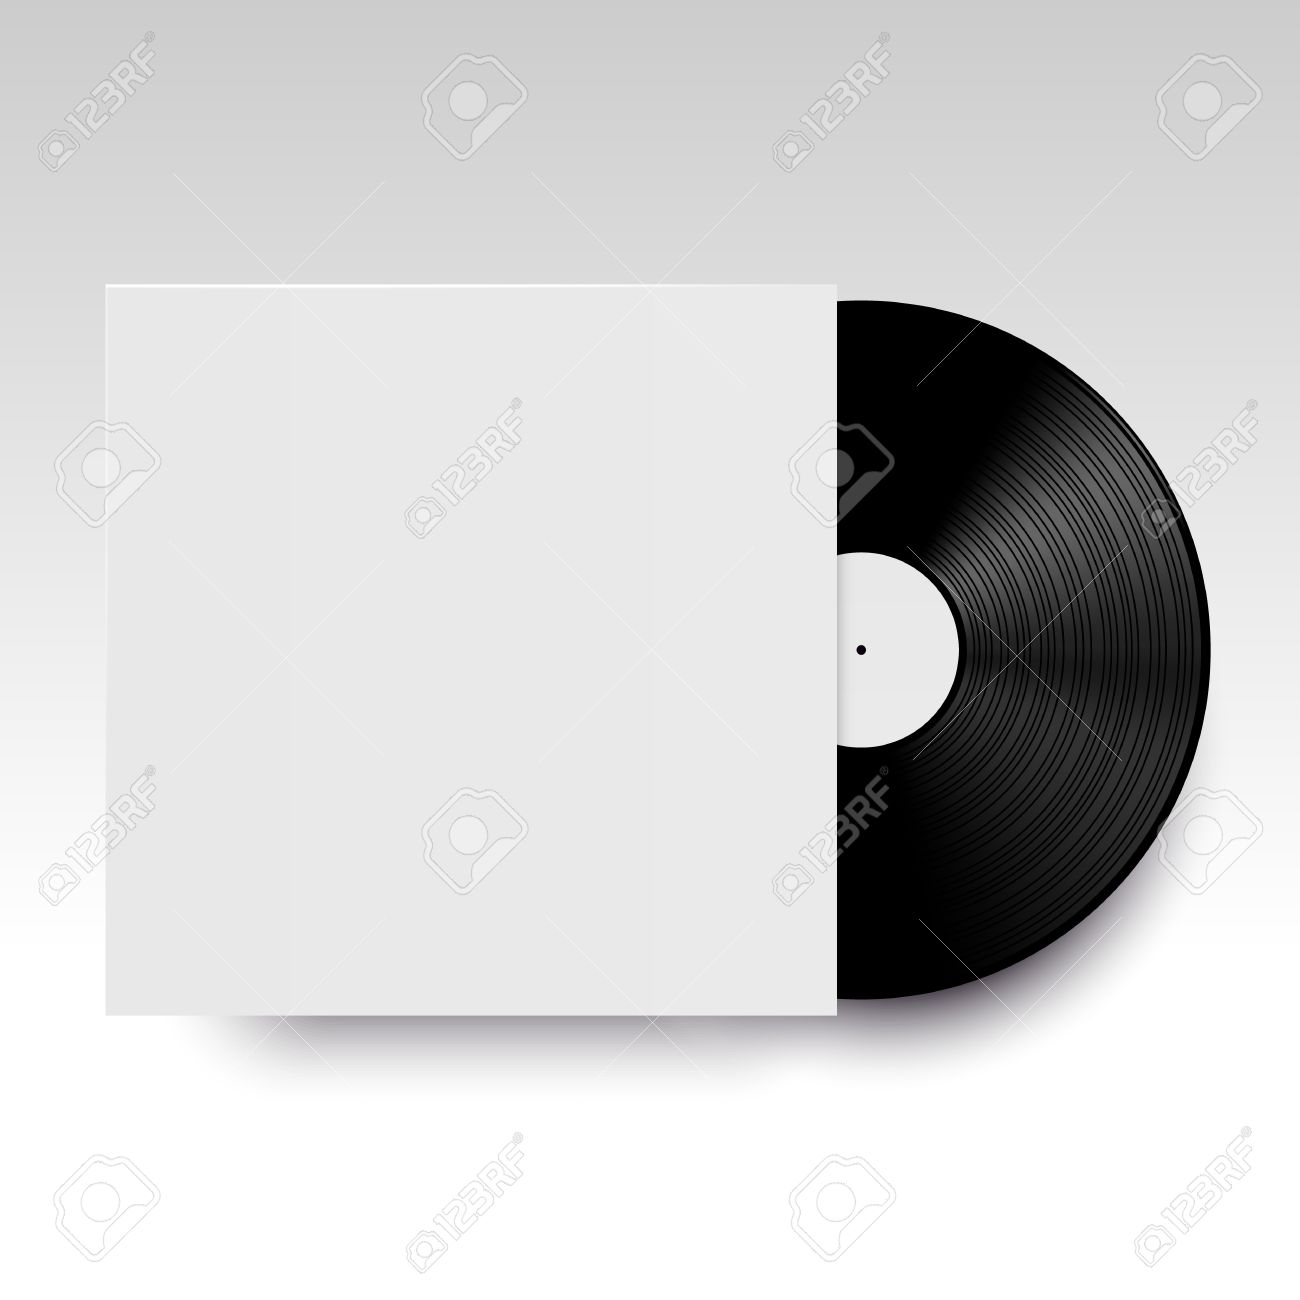 vector isolated vinyl disc with its cover clear template ready